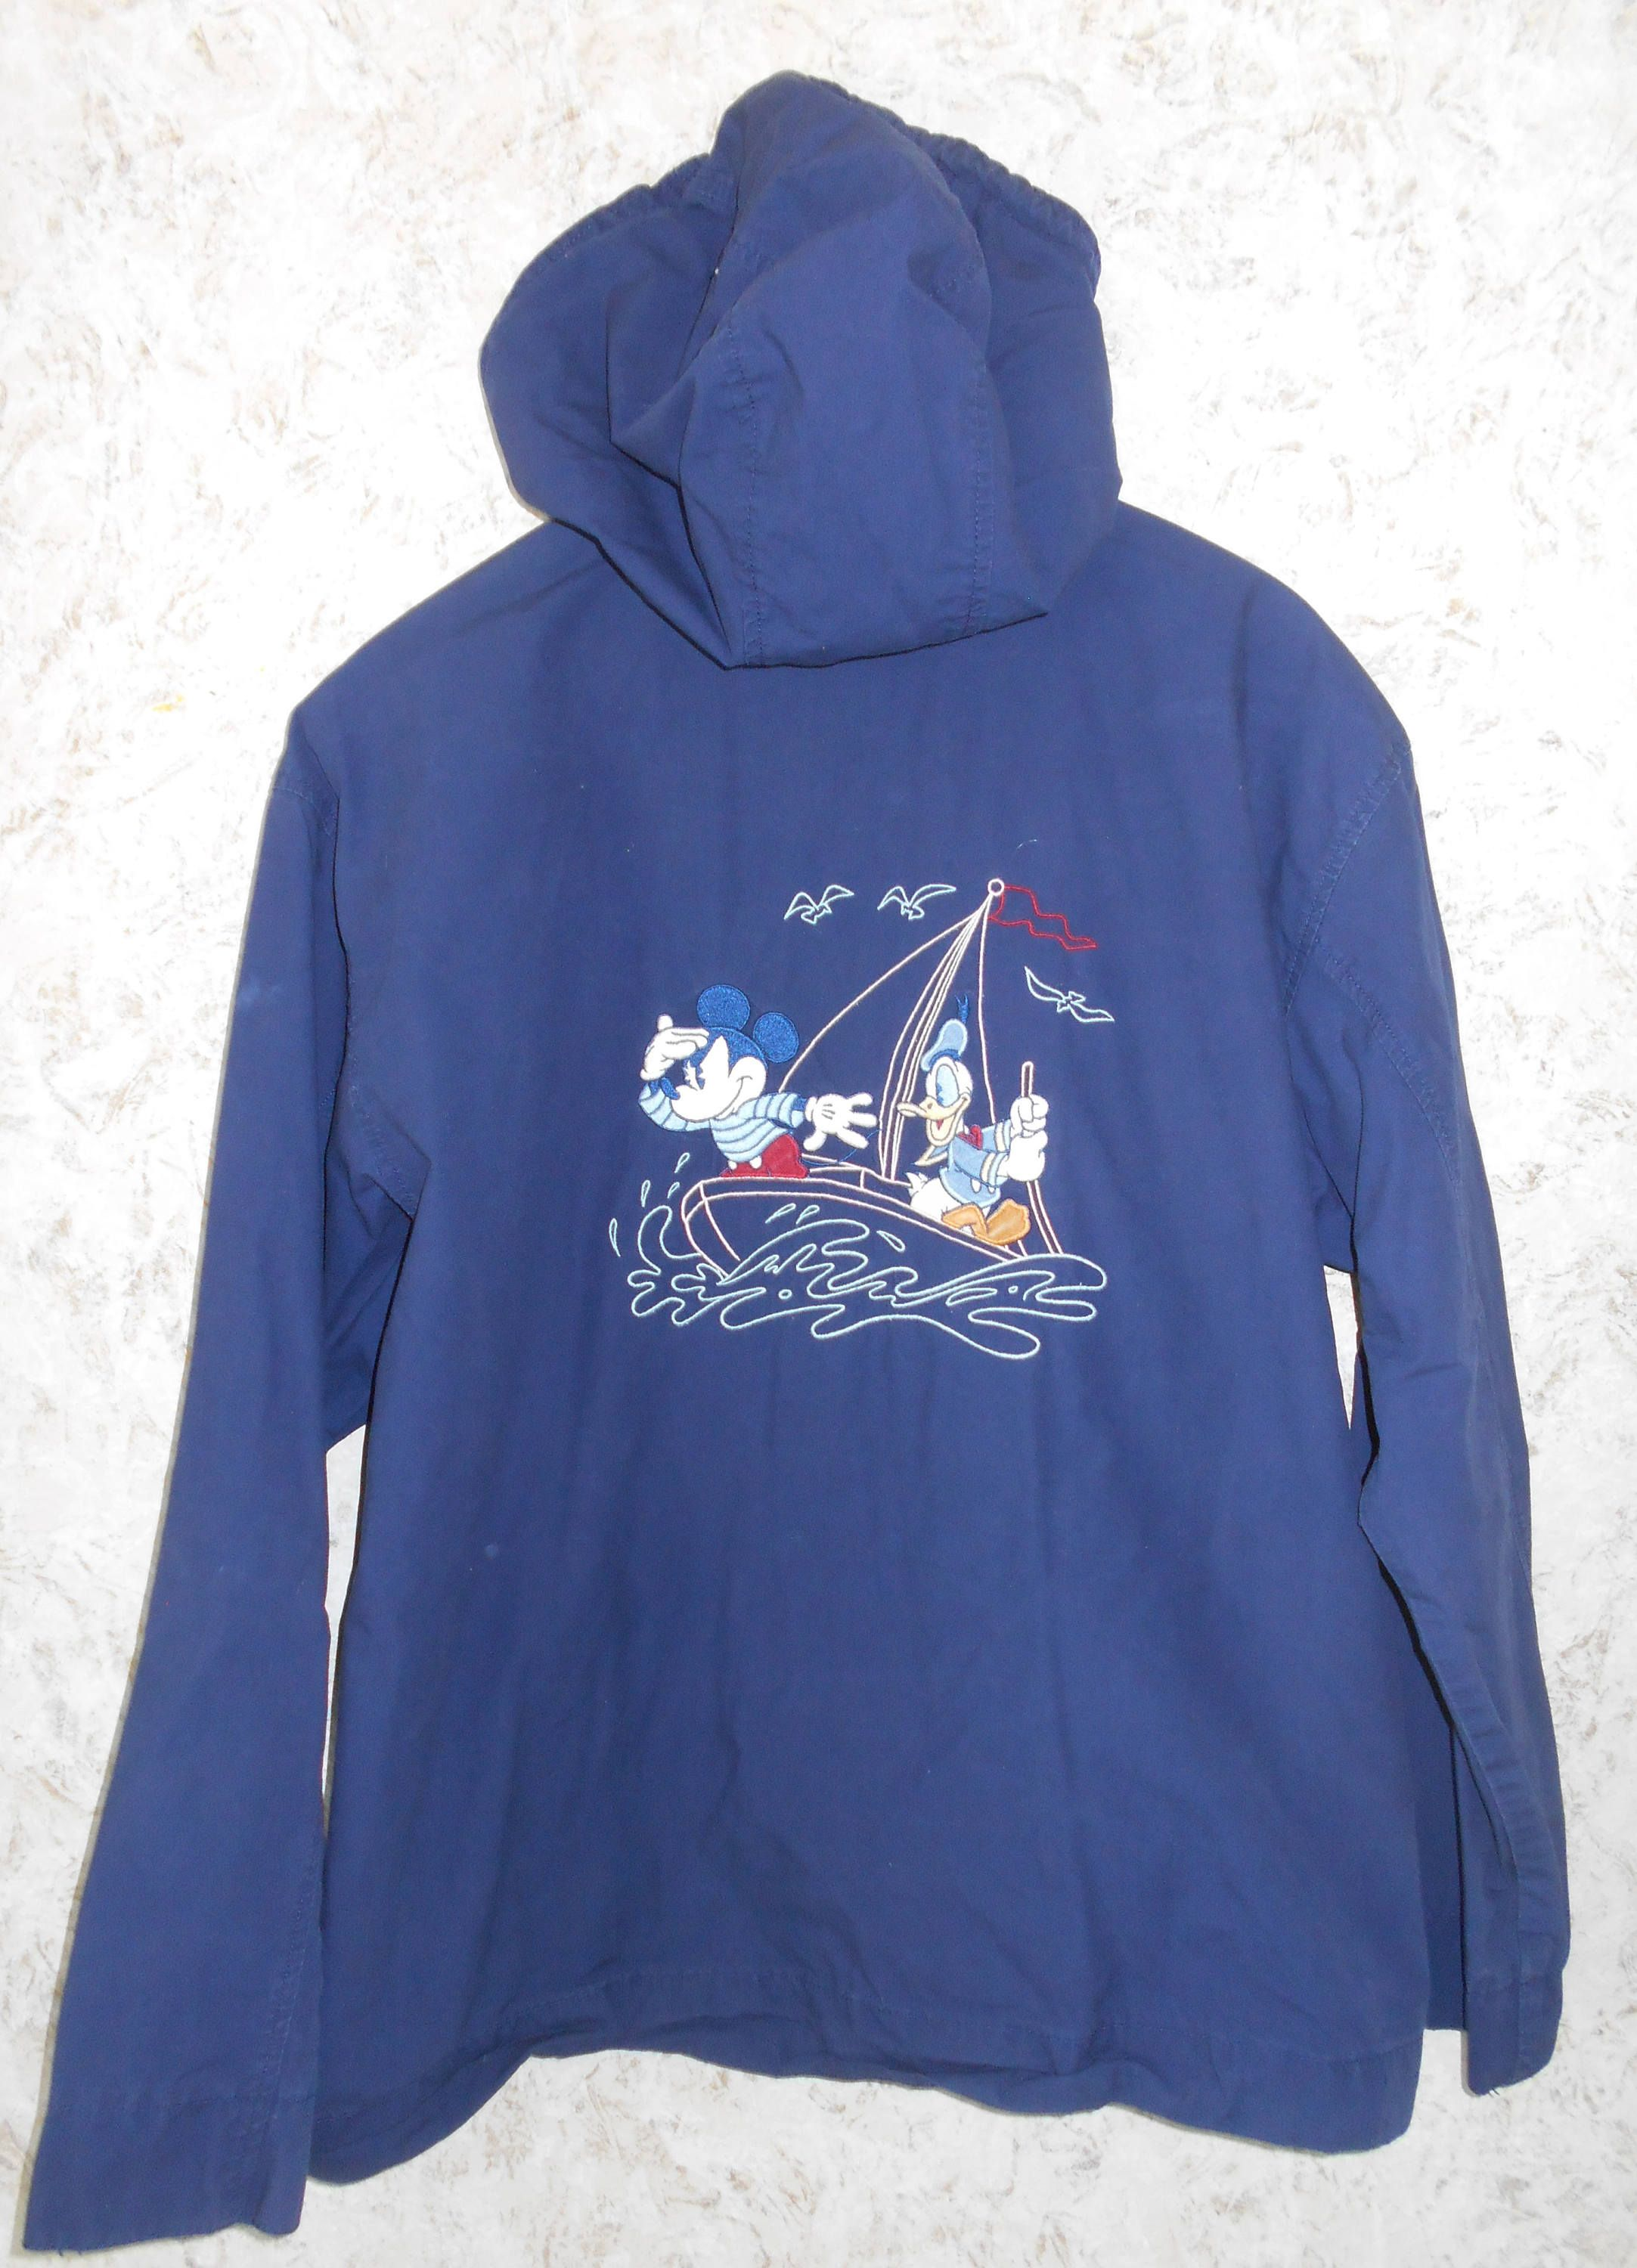 70a77226f8a Vintage Mickey Mouse Sailing Jacket Coat Hooded Donald Duck Embroidered  Back Zippered Front Boating Jacket Navy Blue Disney Womens Medium by  CoolDogVintage ...